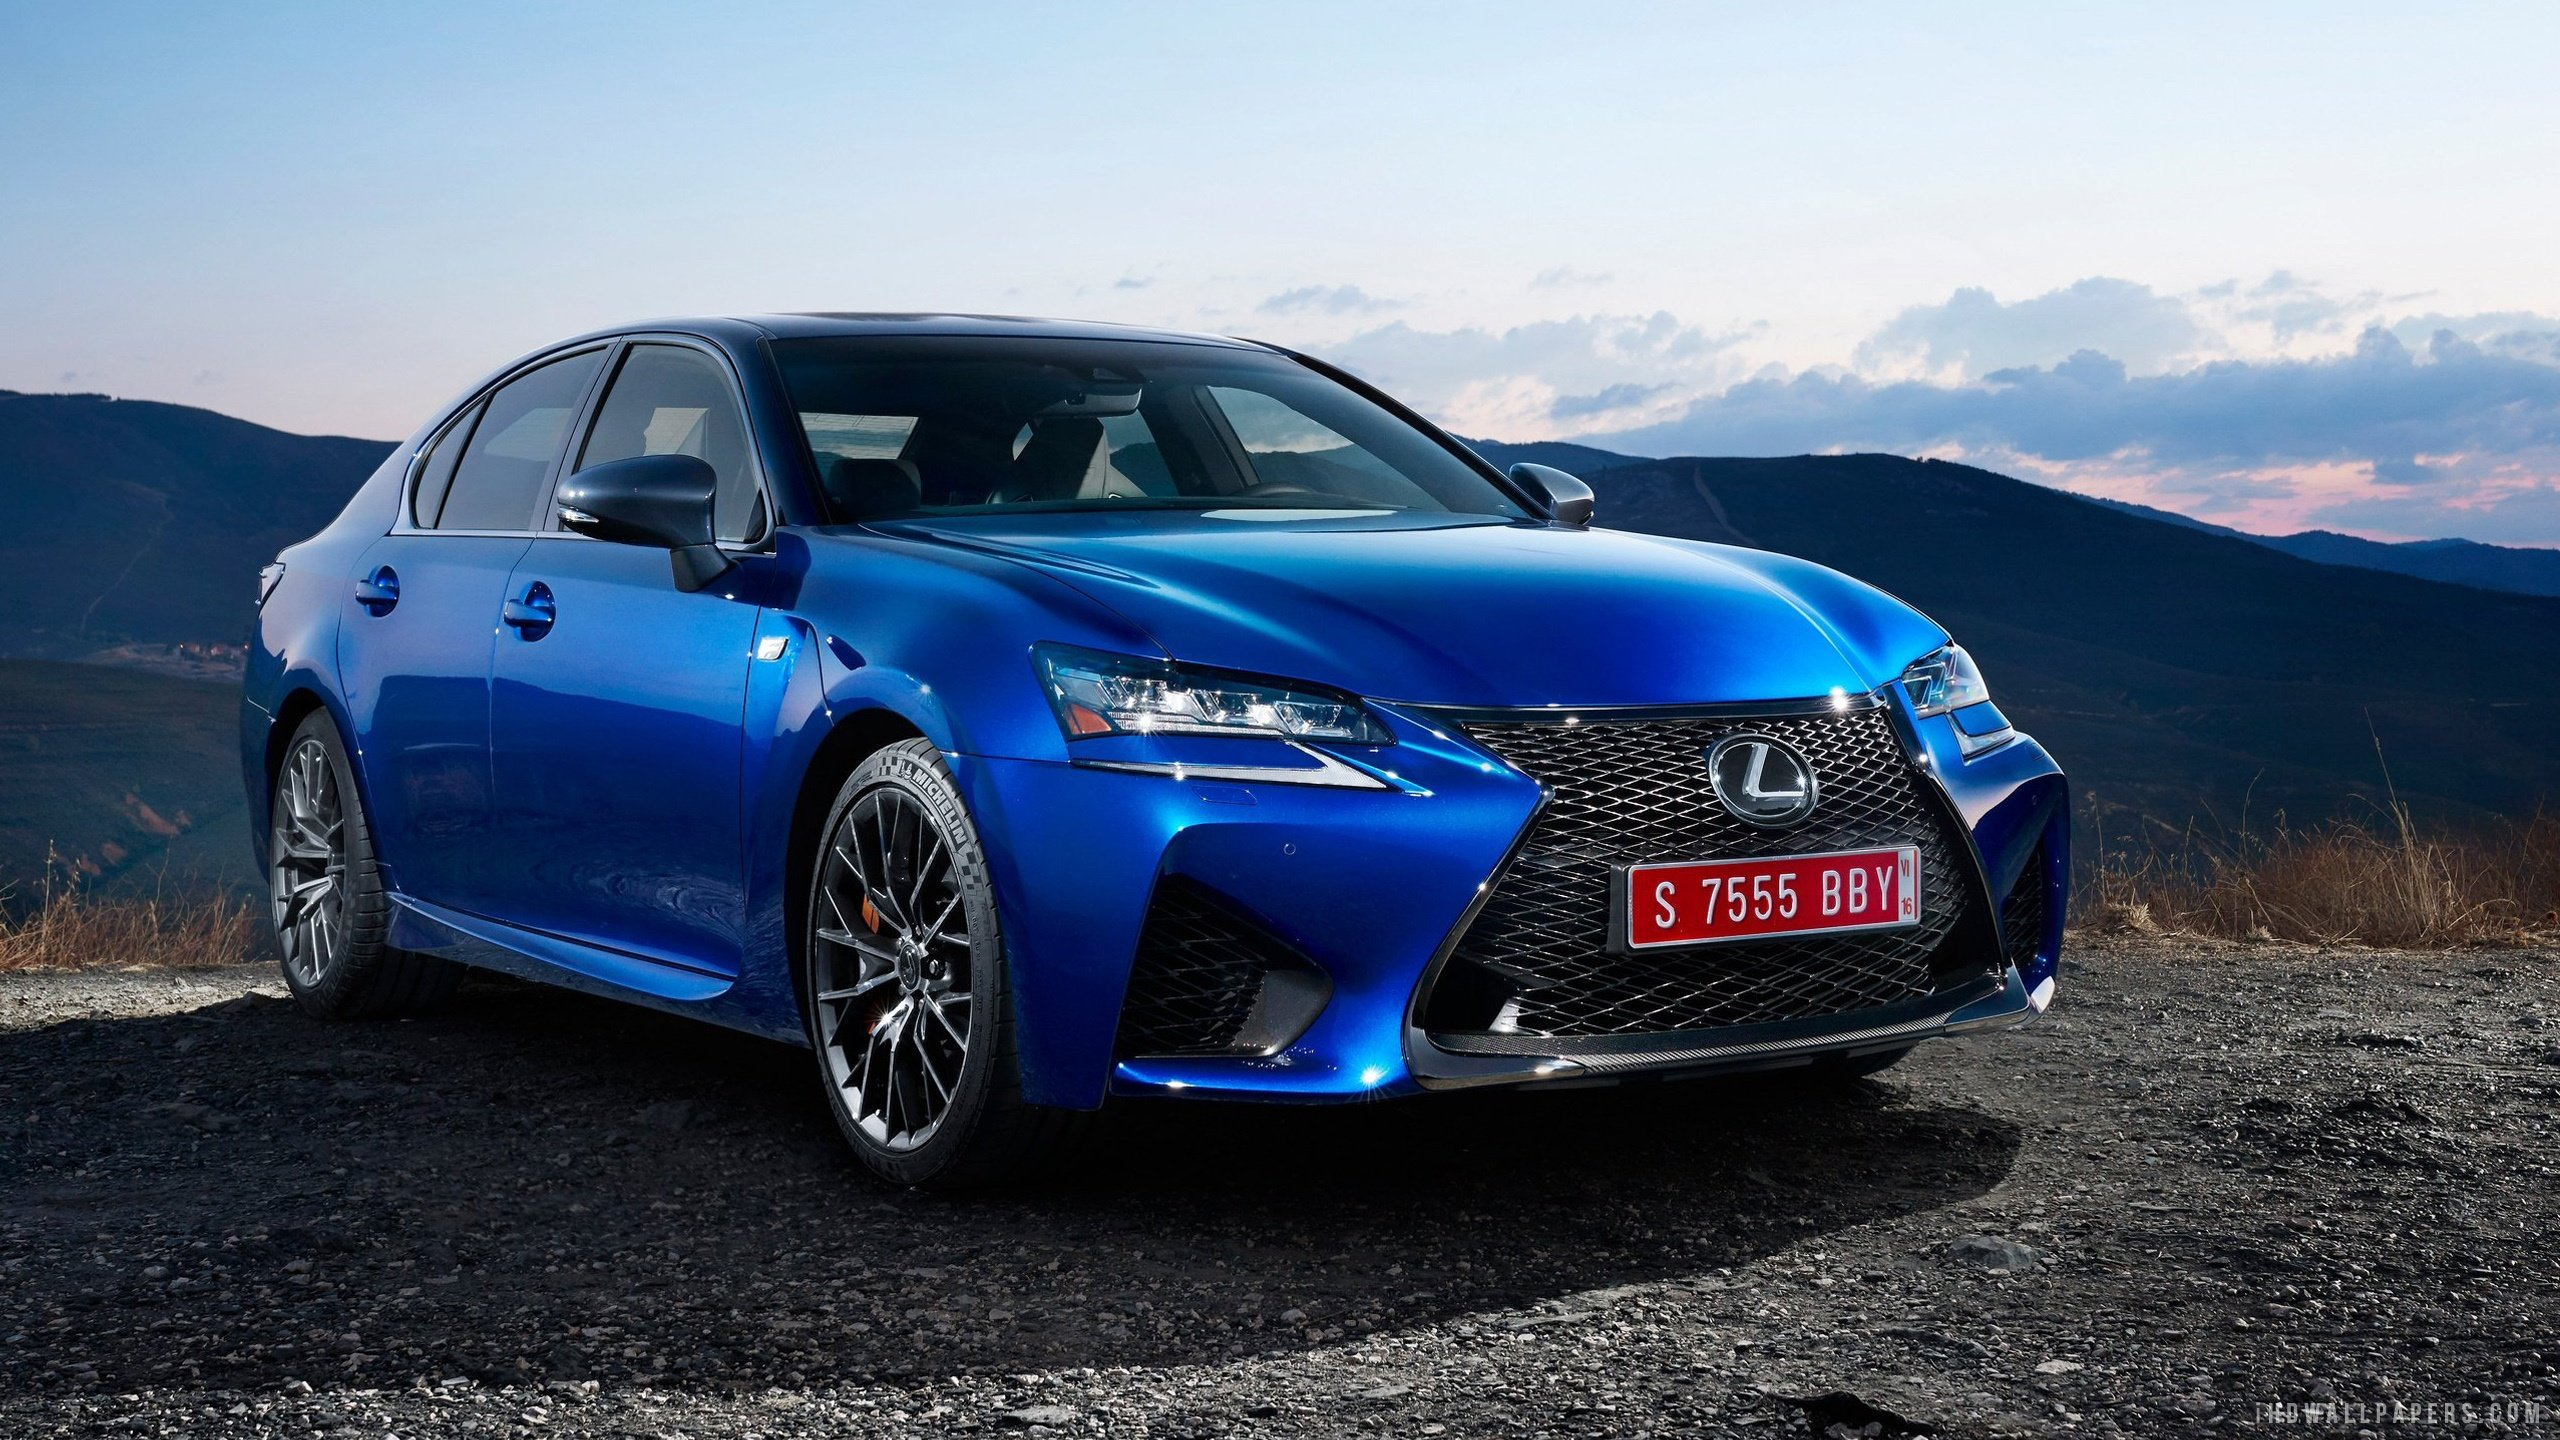 2016 Lexus GS F HD Wallpaper   iHD Wallpapers 2560x1440